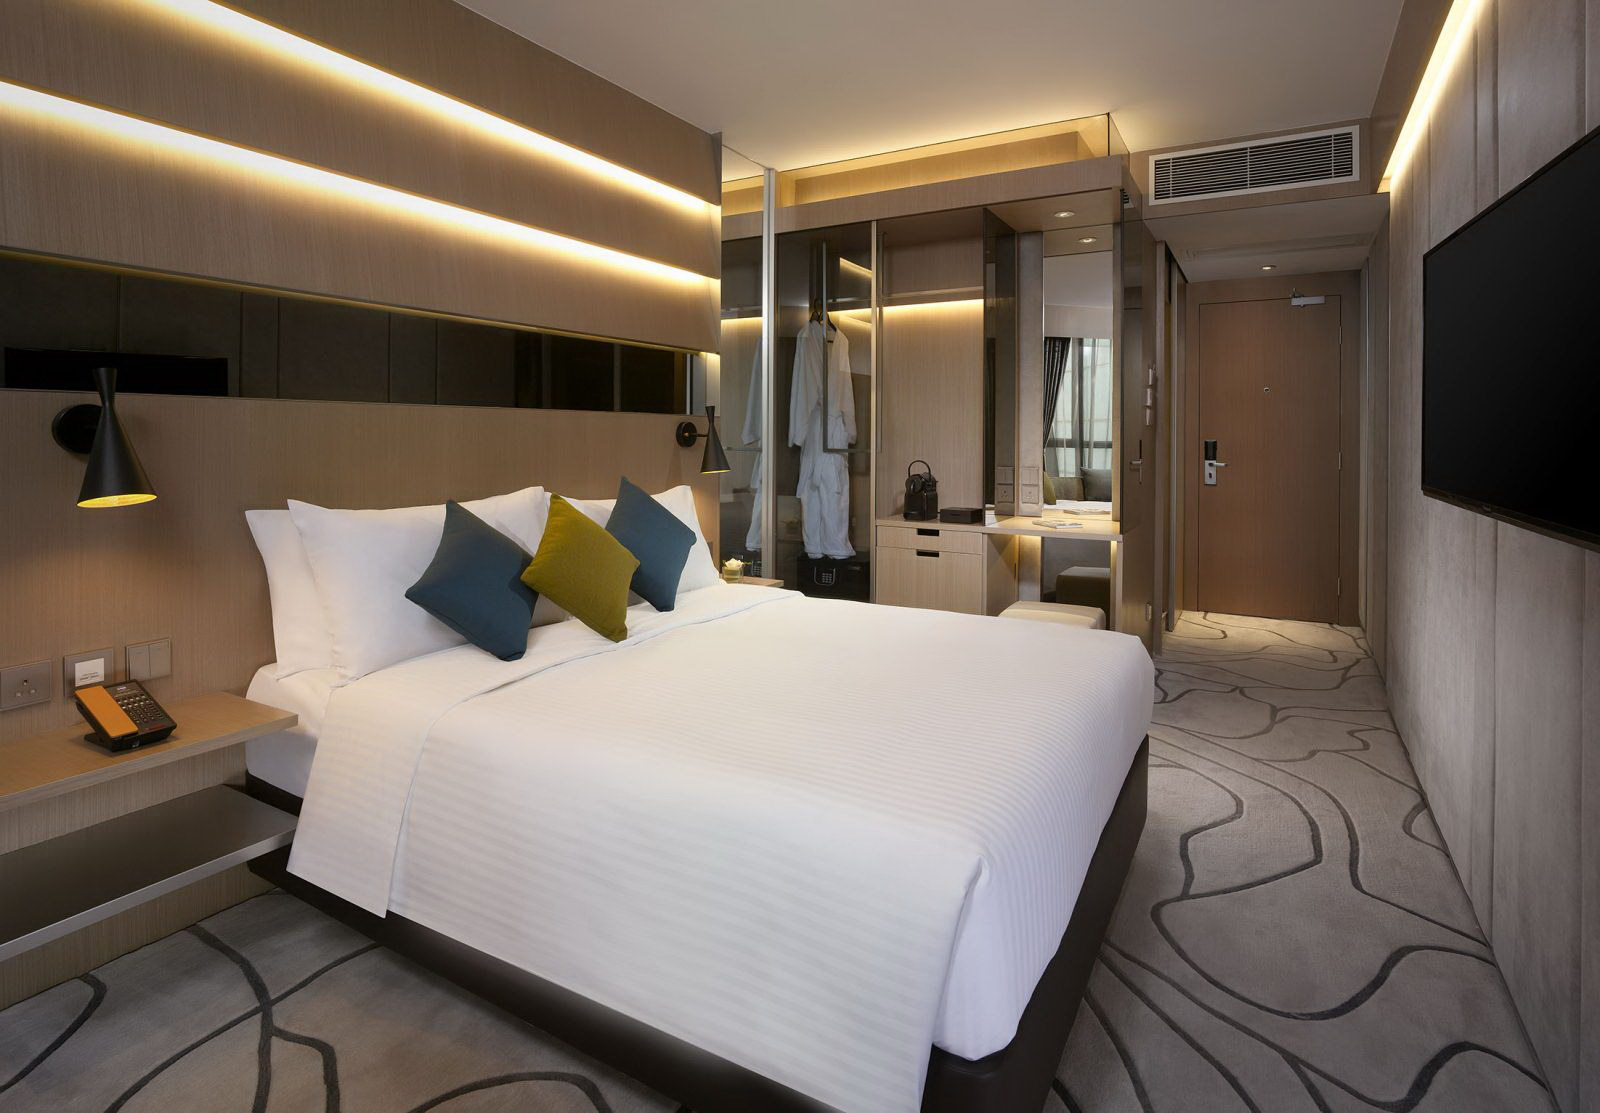 The Optimum Floor Premier Plus Room